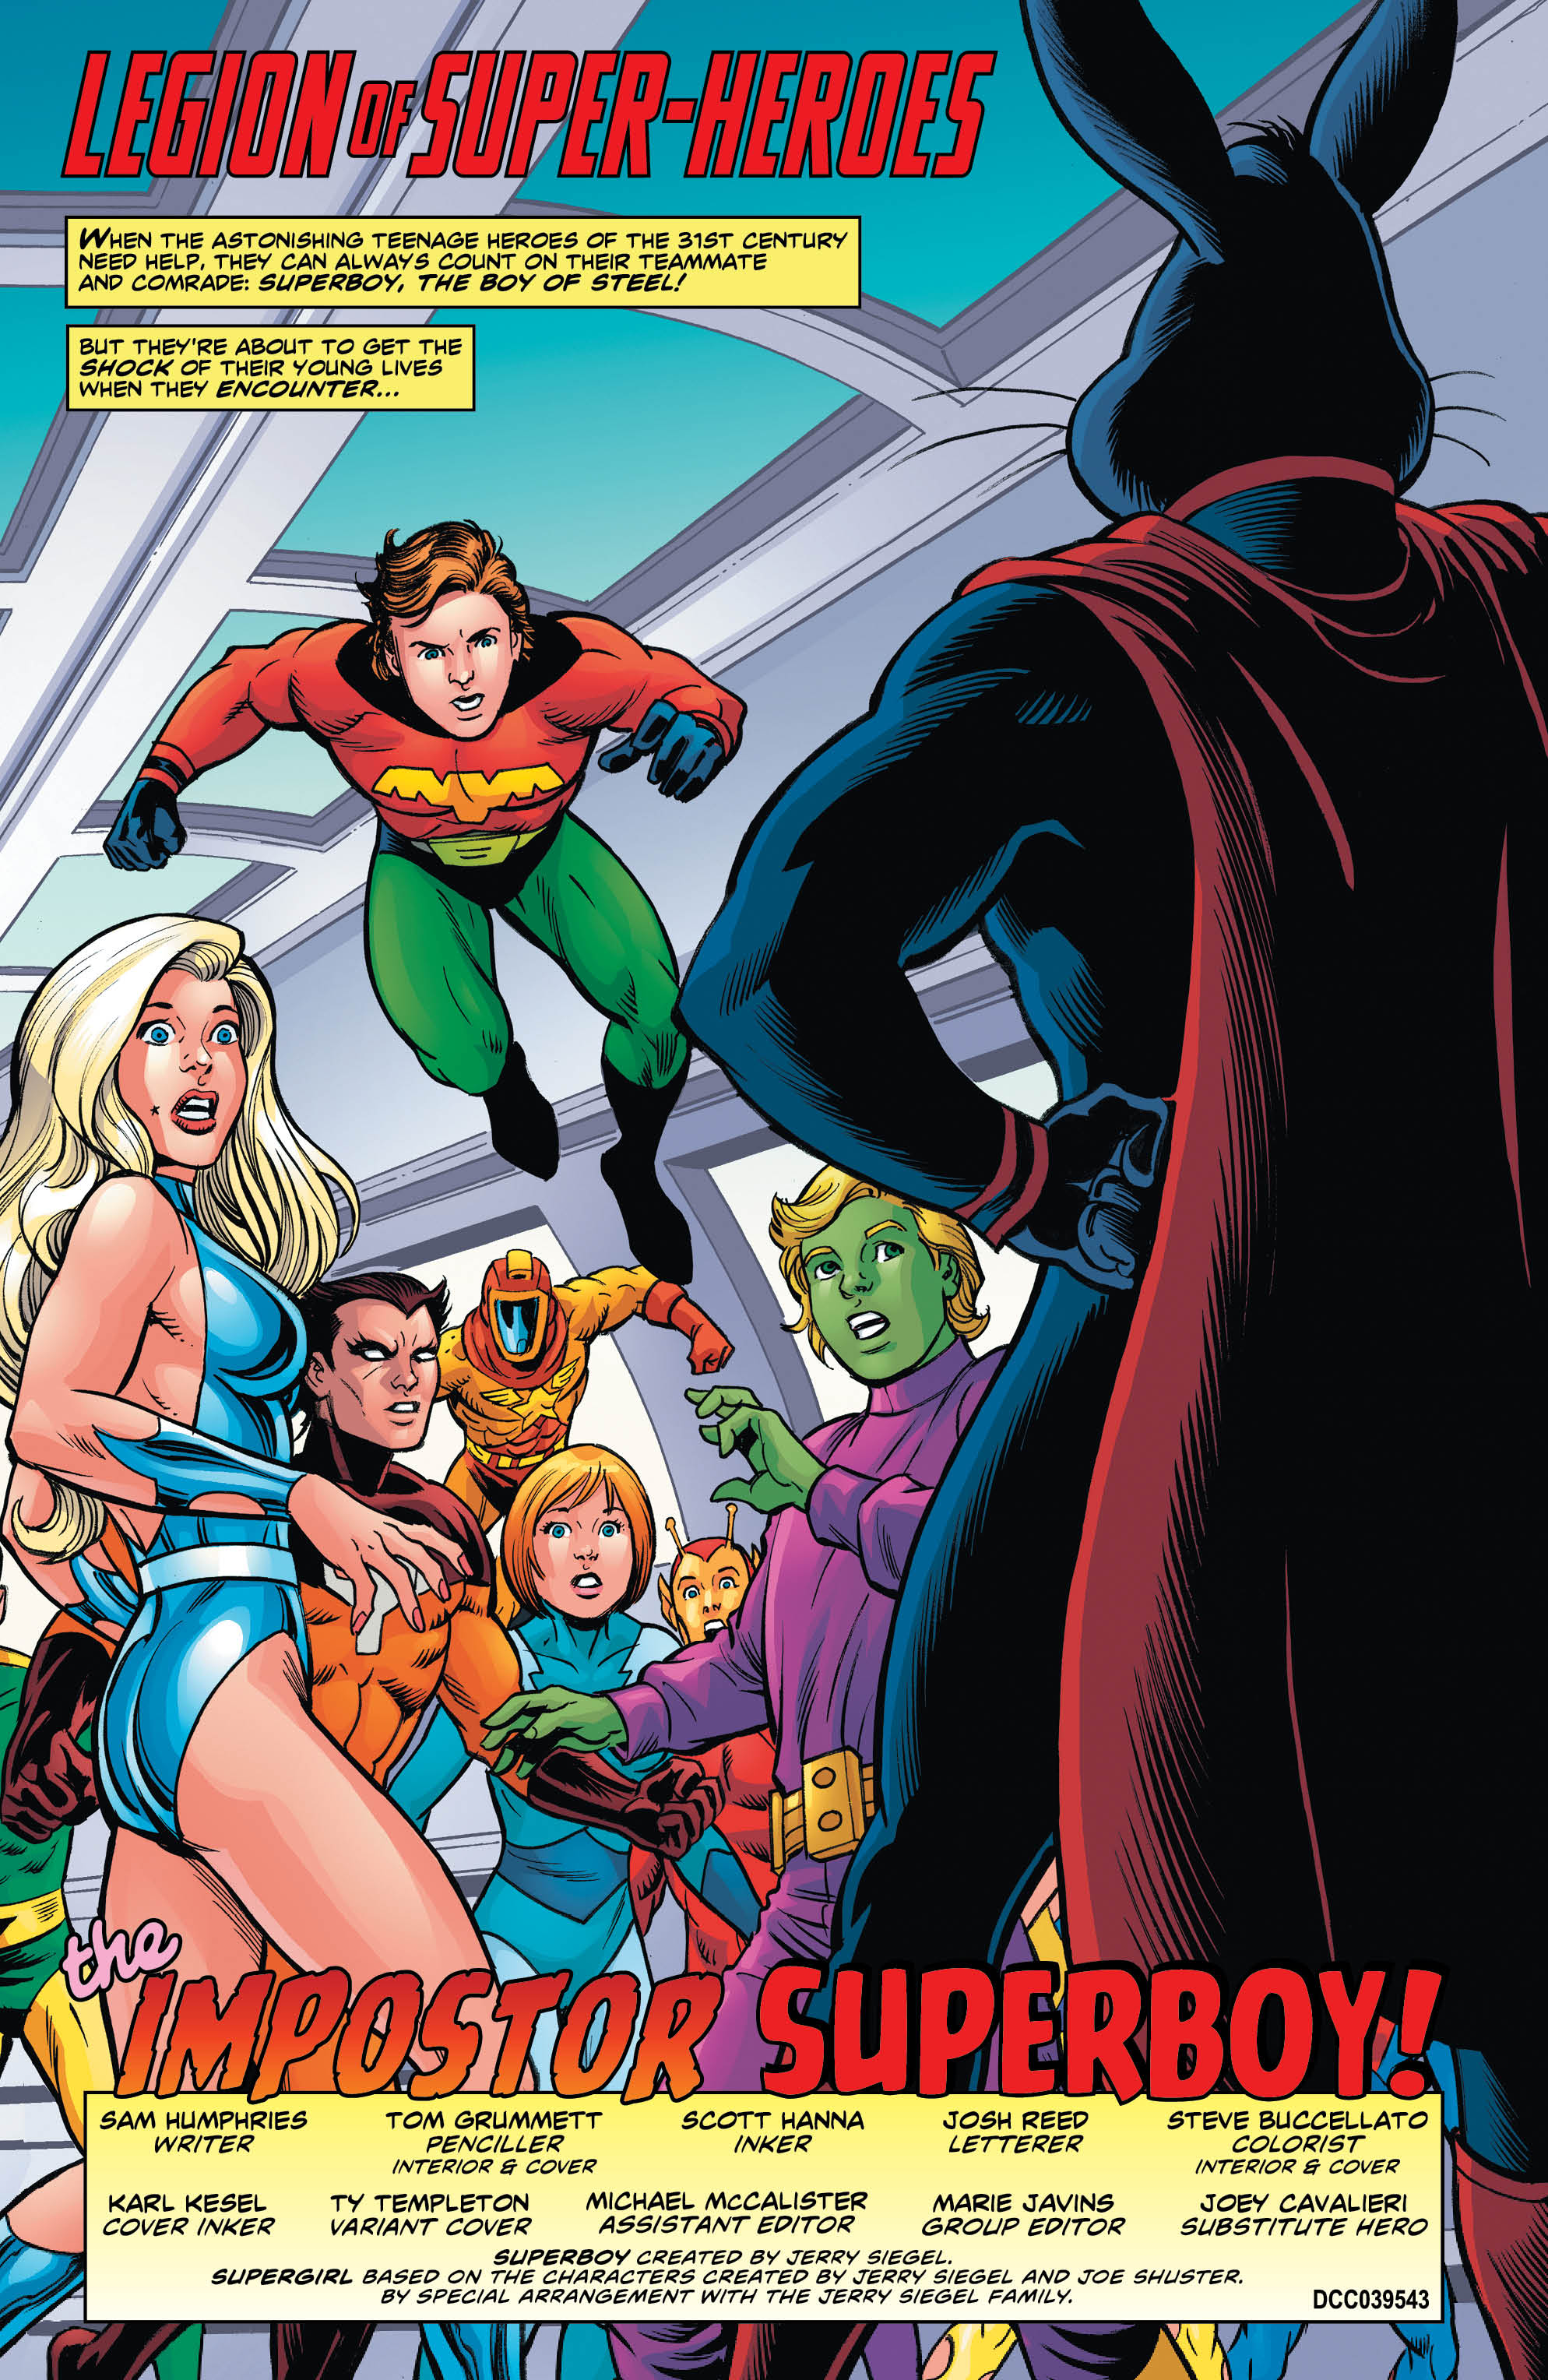 Legion of Super-Heroes Bugs Bunny 1 - DC Comics News